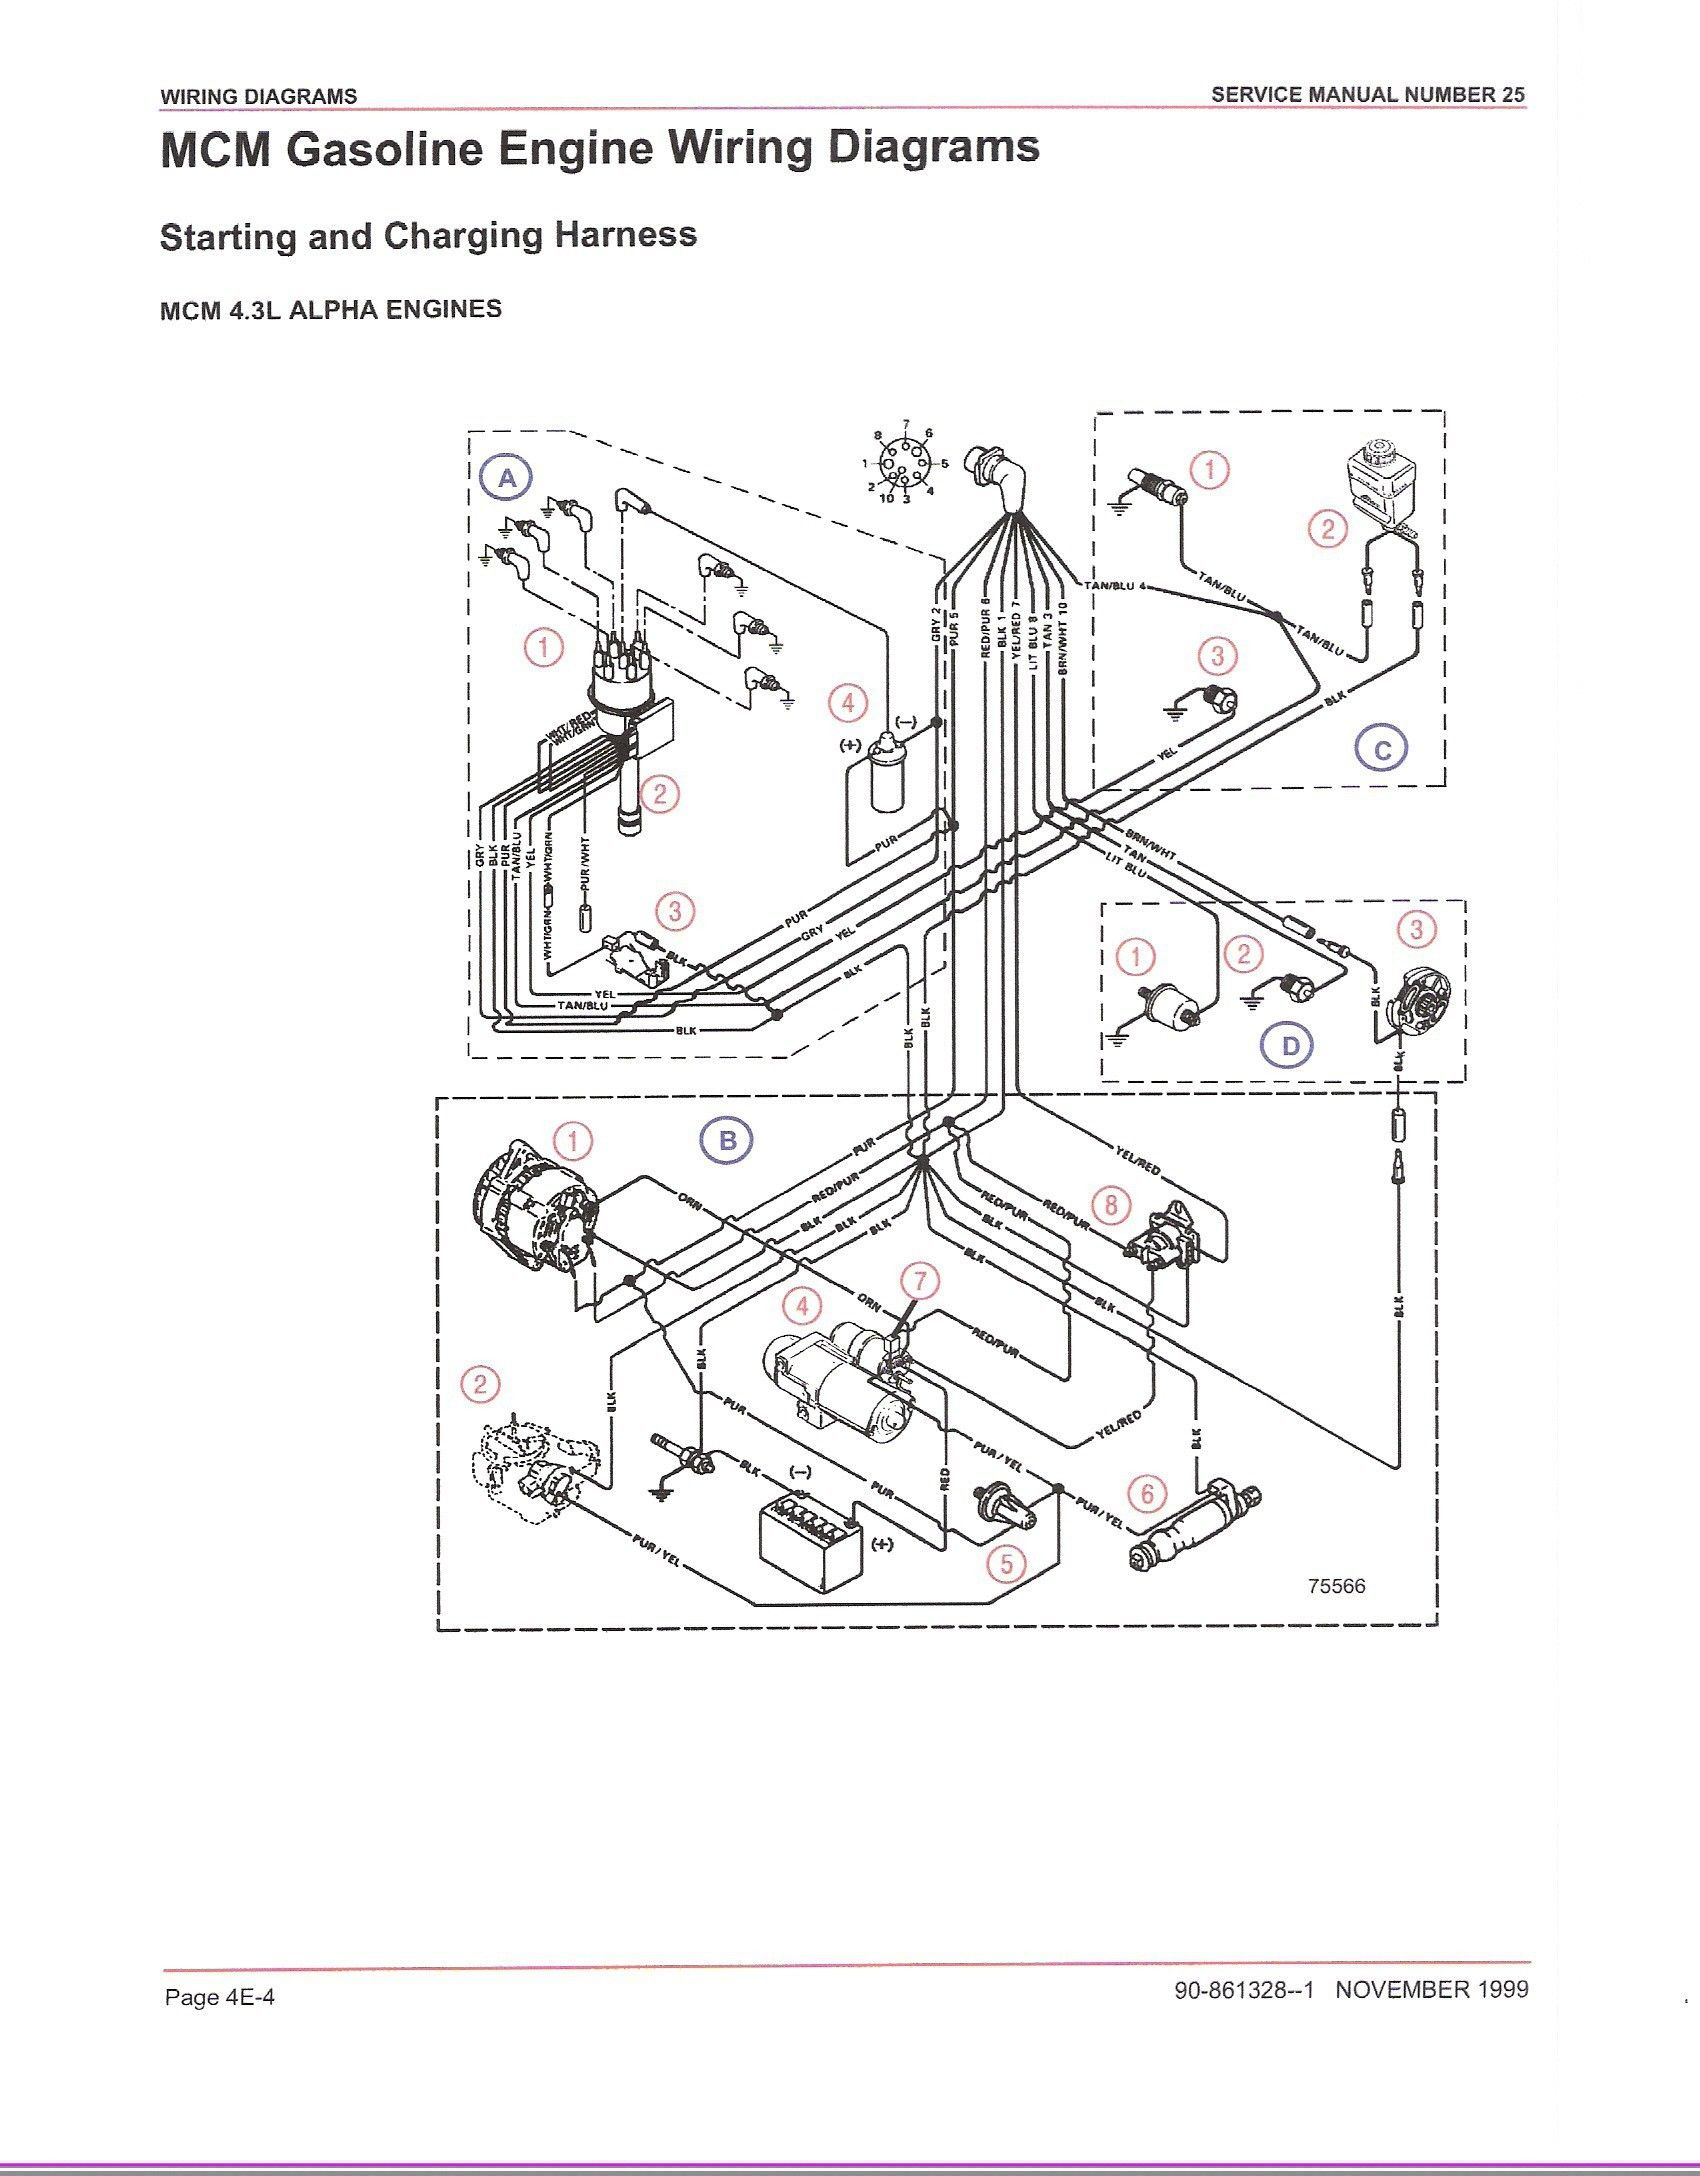 Mercruiser 3.0 Alternator Wiring Diagram from i.pinimg.com